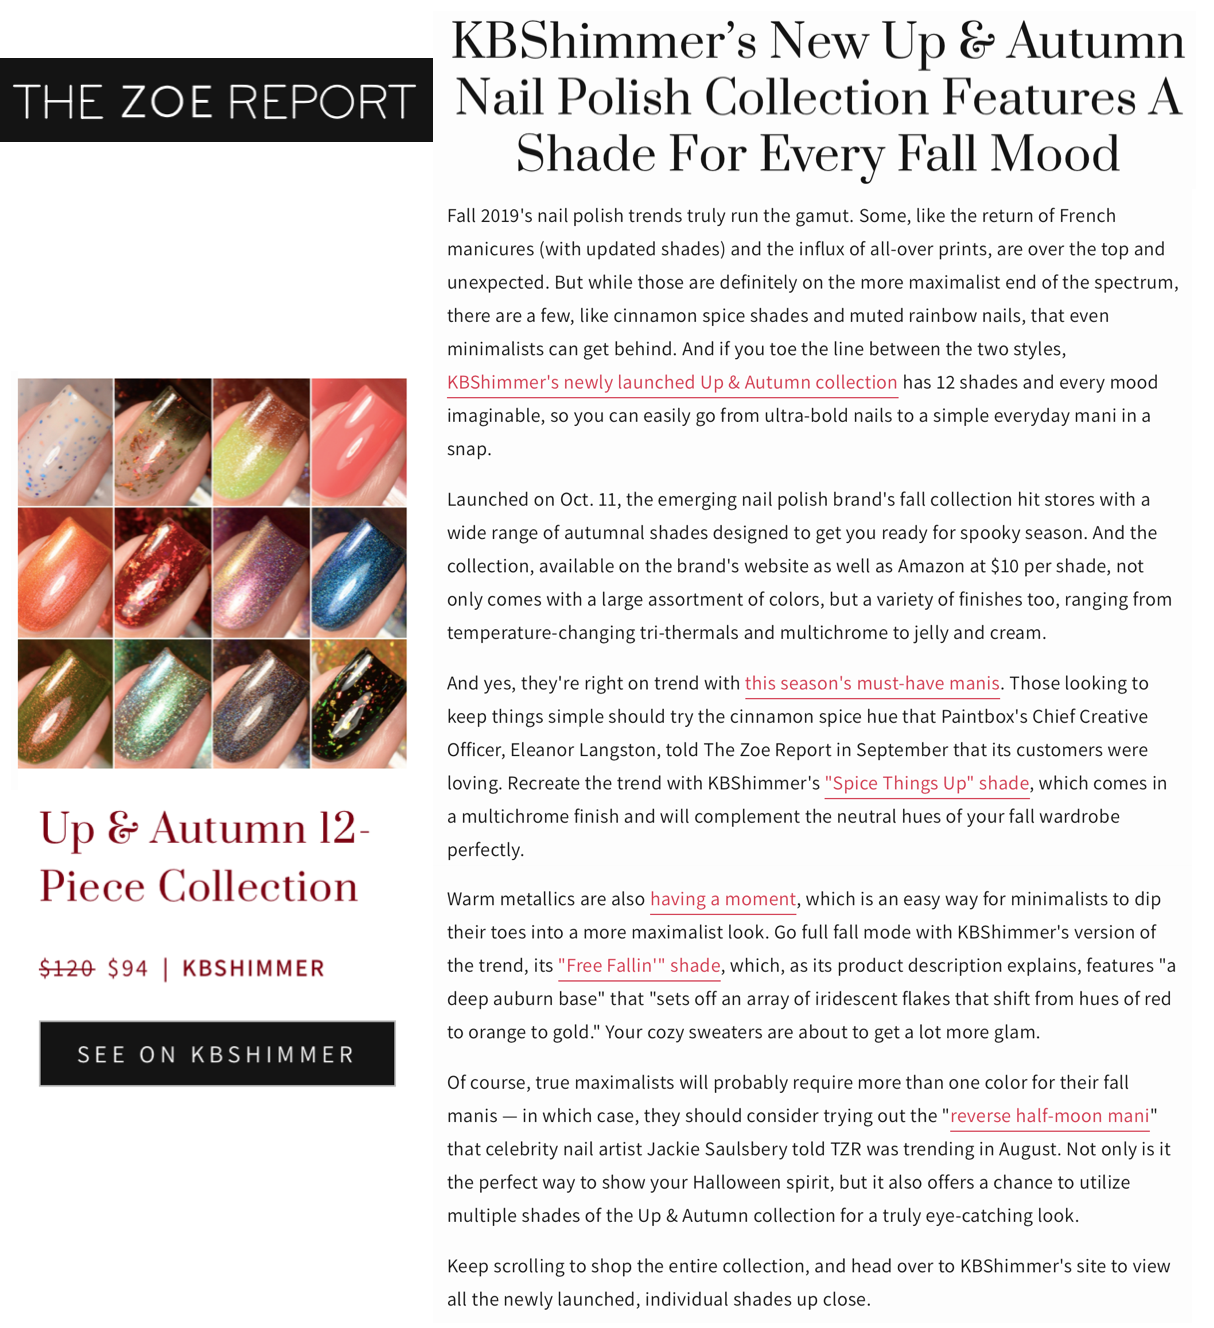 The Zoe Report 10.22.19.png